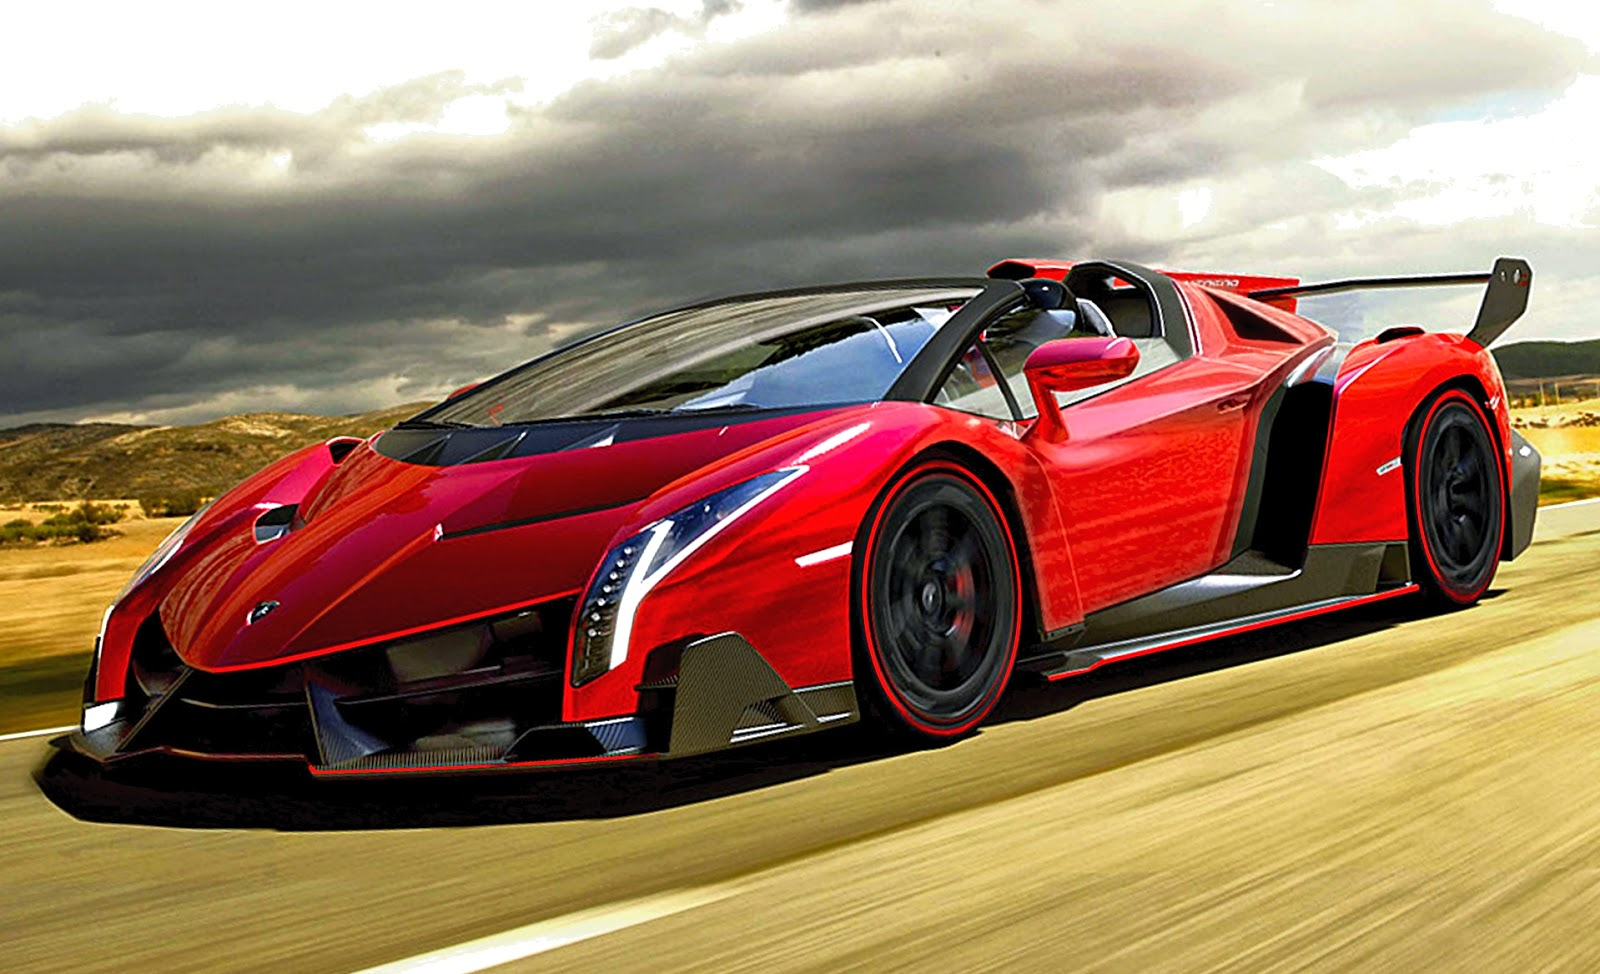 Blok888 Top 10 Most Expensive Cars In The World 2014